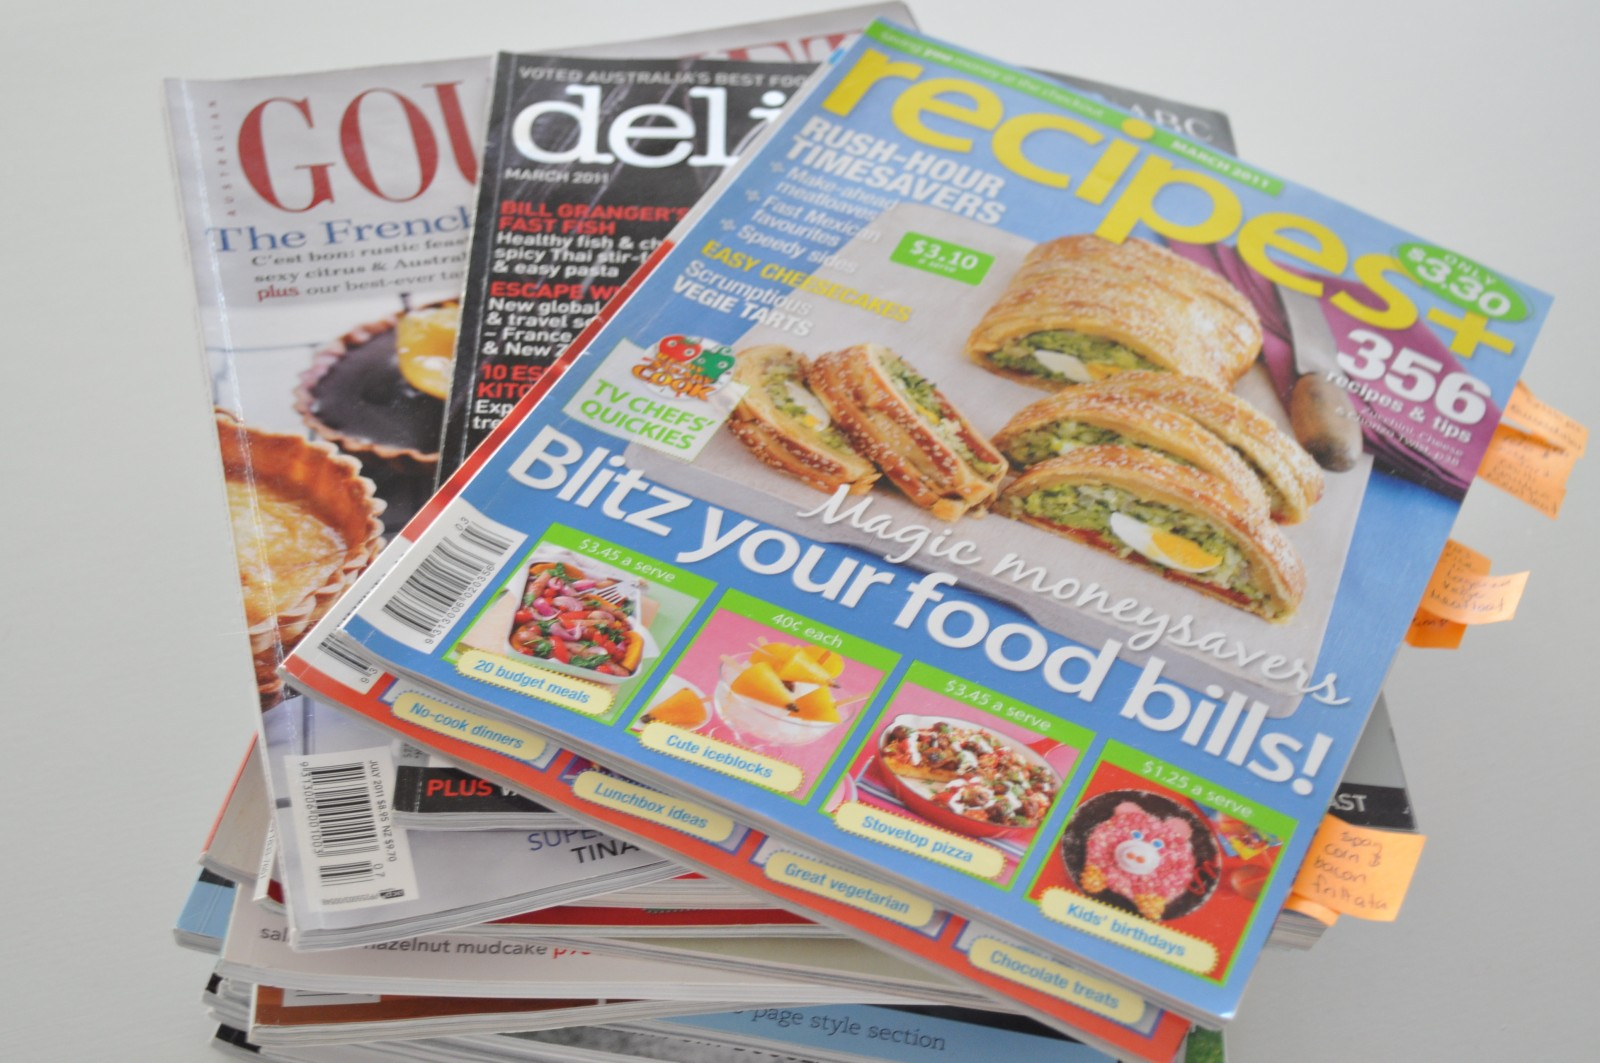 How to organise magazine clippings